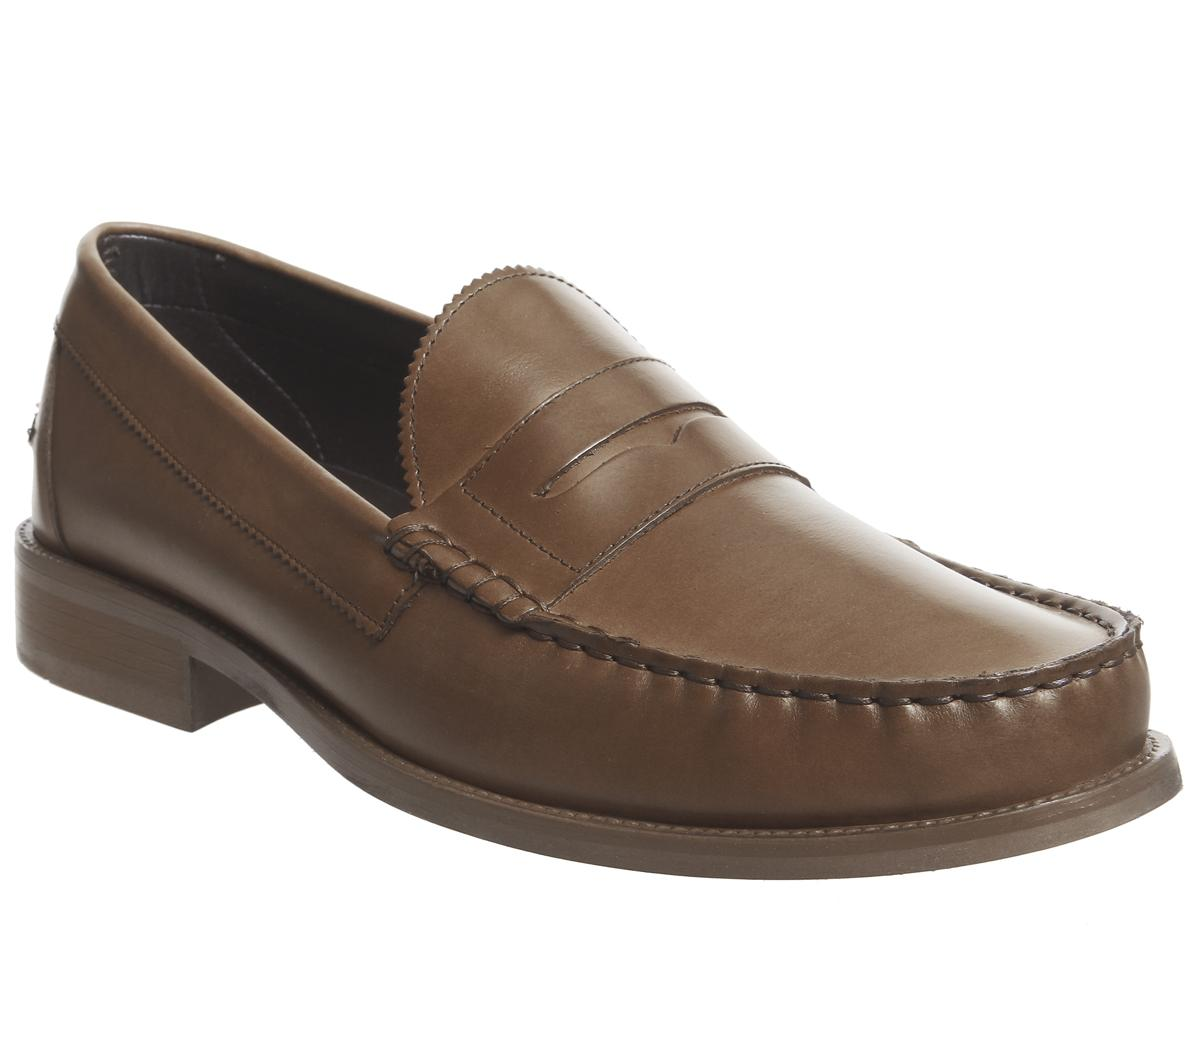 Bonjourno Penny Loafers